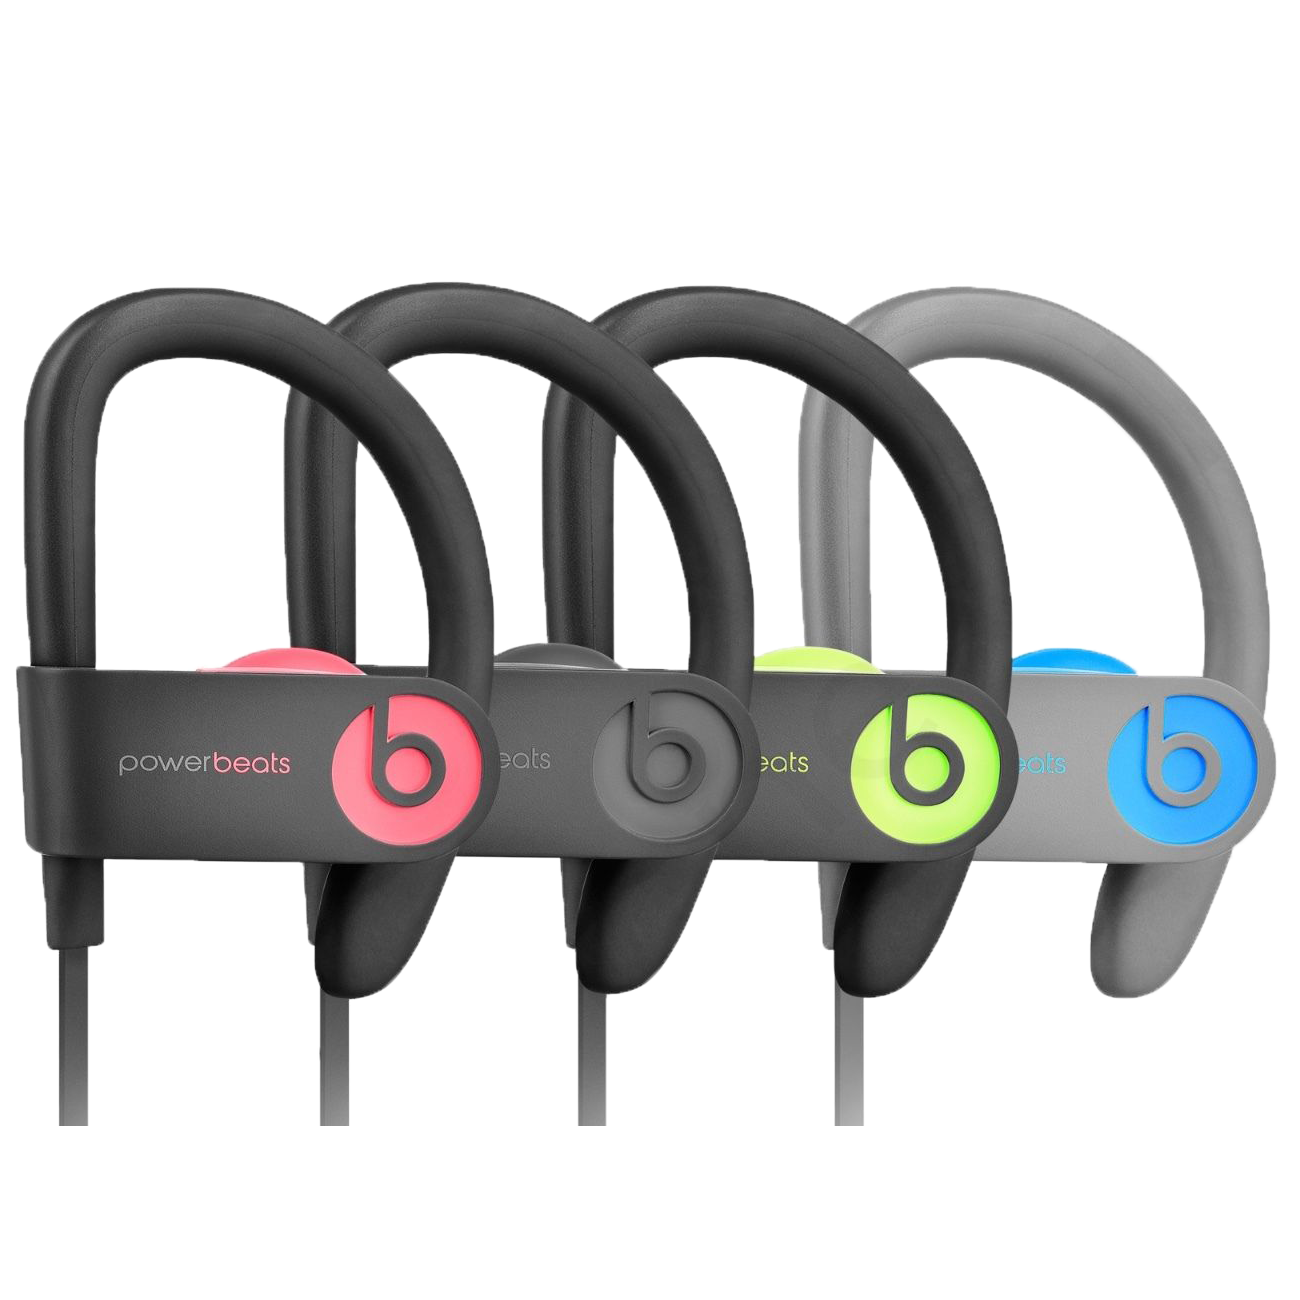 2d7f293f4a4 Beats Powerbeats3 Sweat Resistant Bluetooth Wireless In Ear Headphones